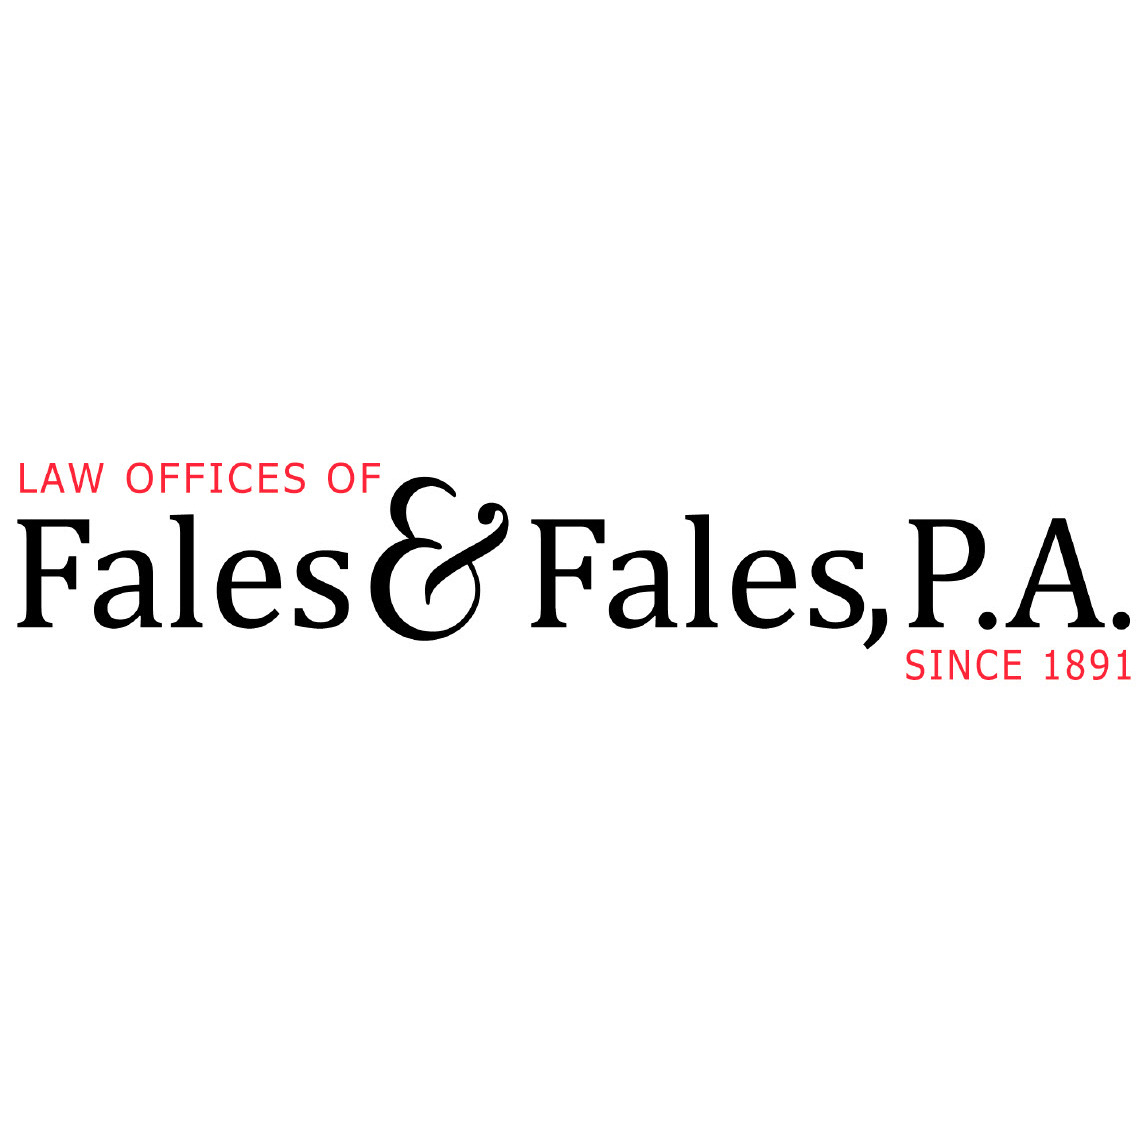 photo of Fales & Fales, P.A.